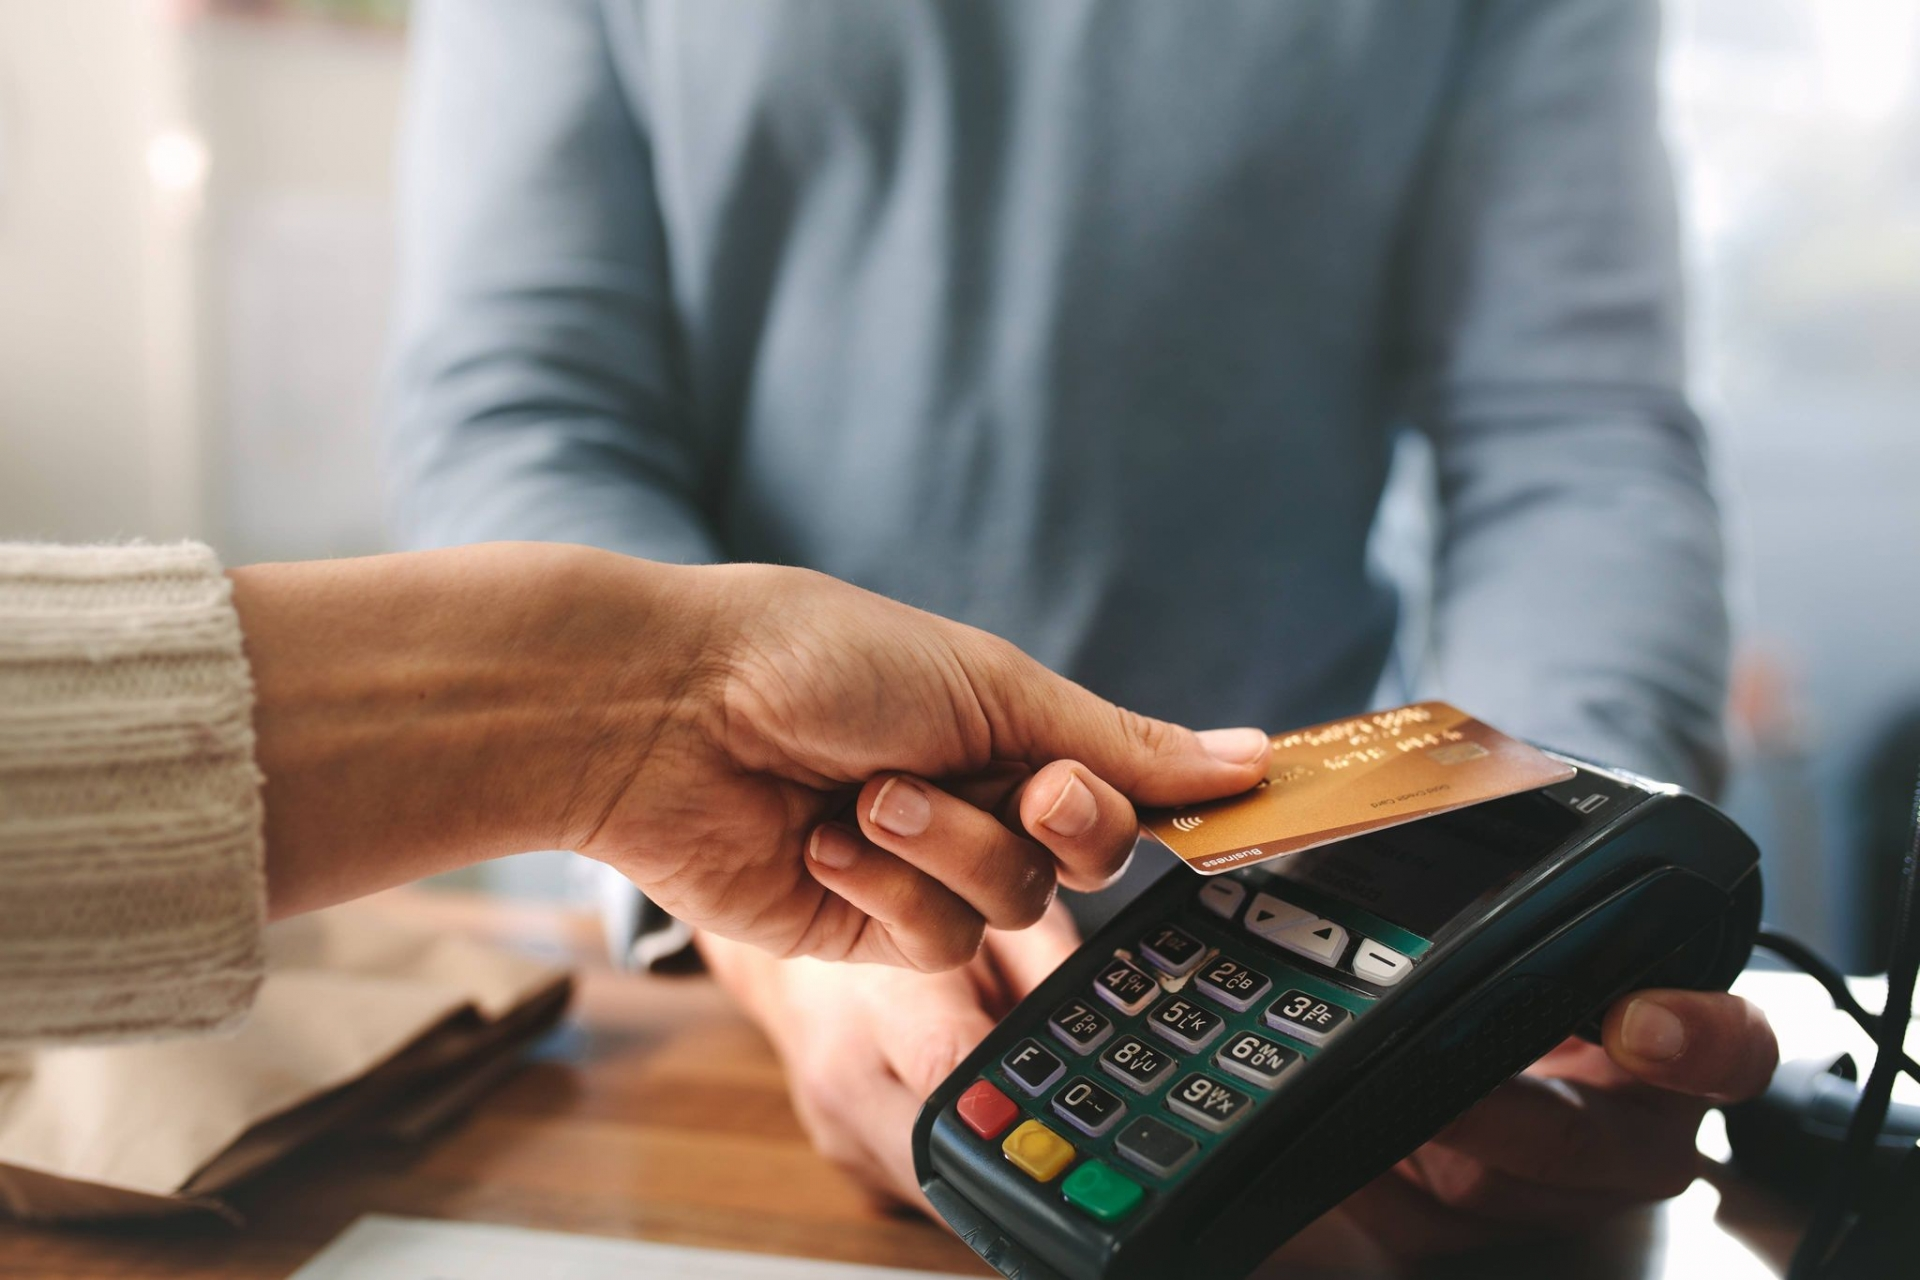 Visa extends support of Cashless Day to drive growth of non-cash payments in Vietnam